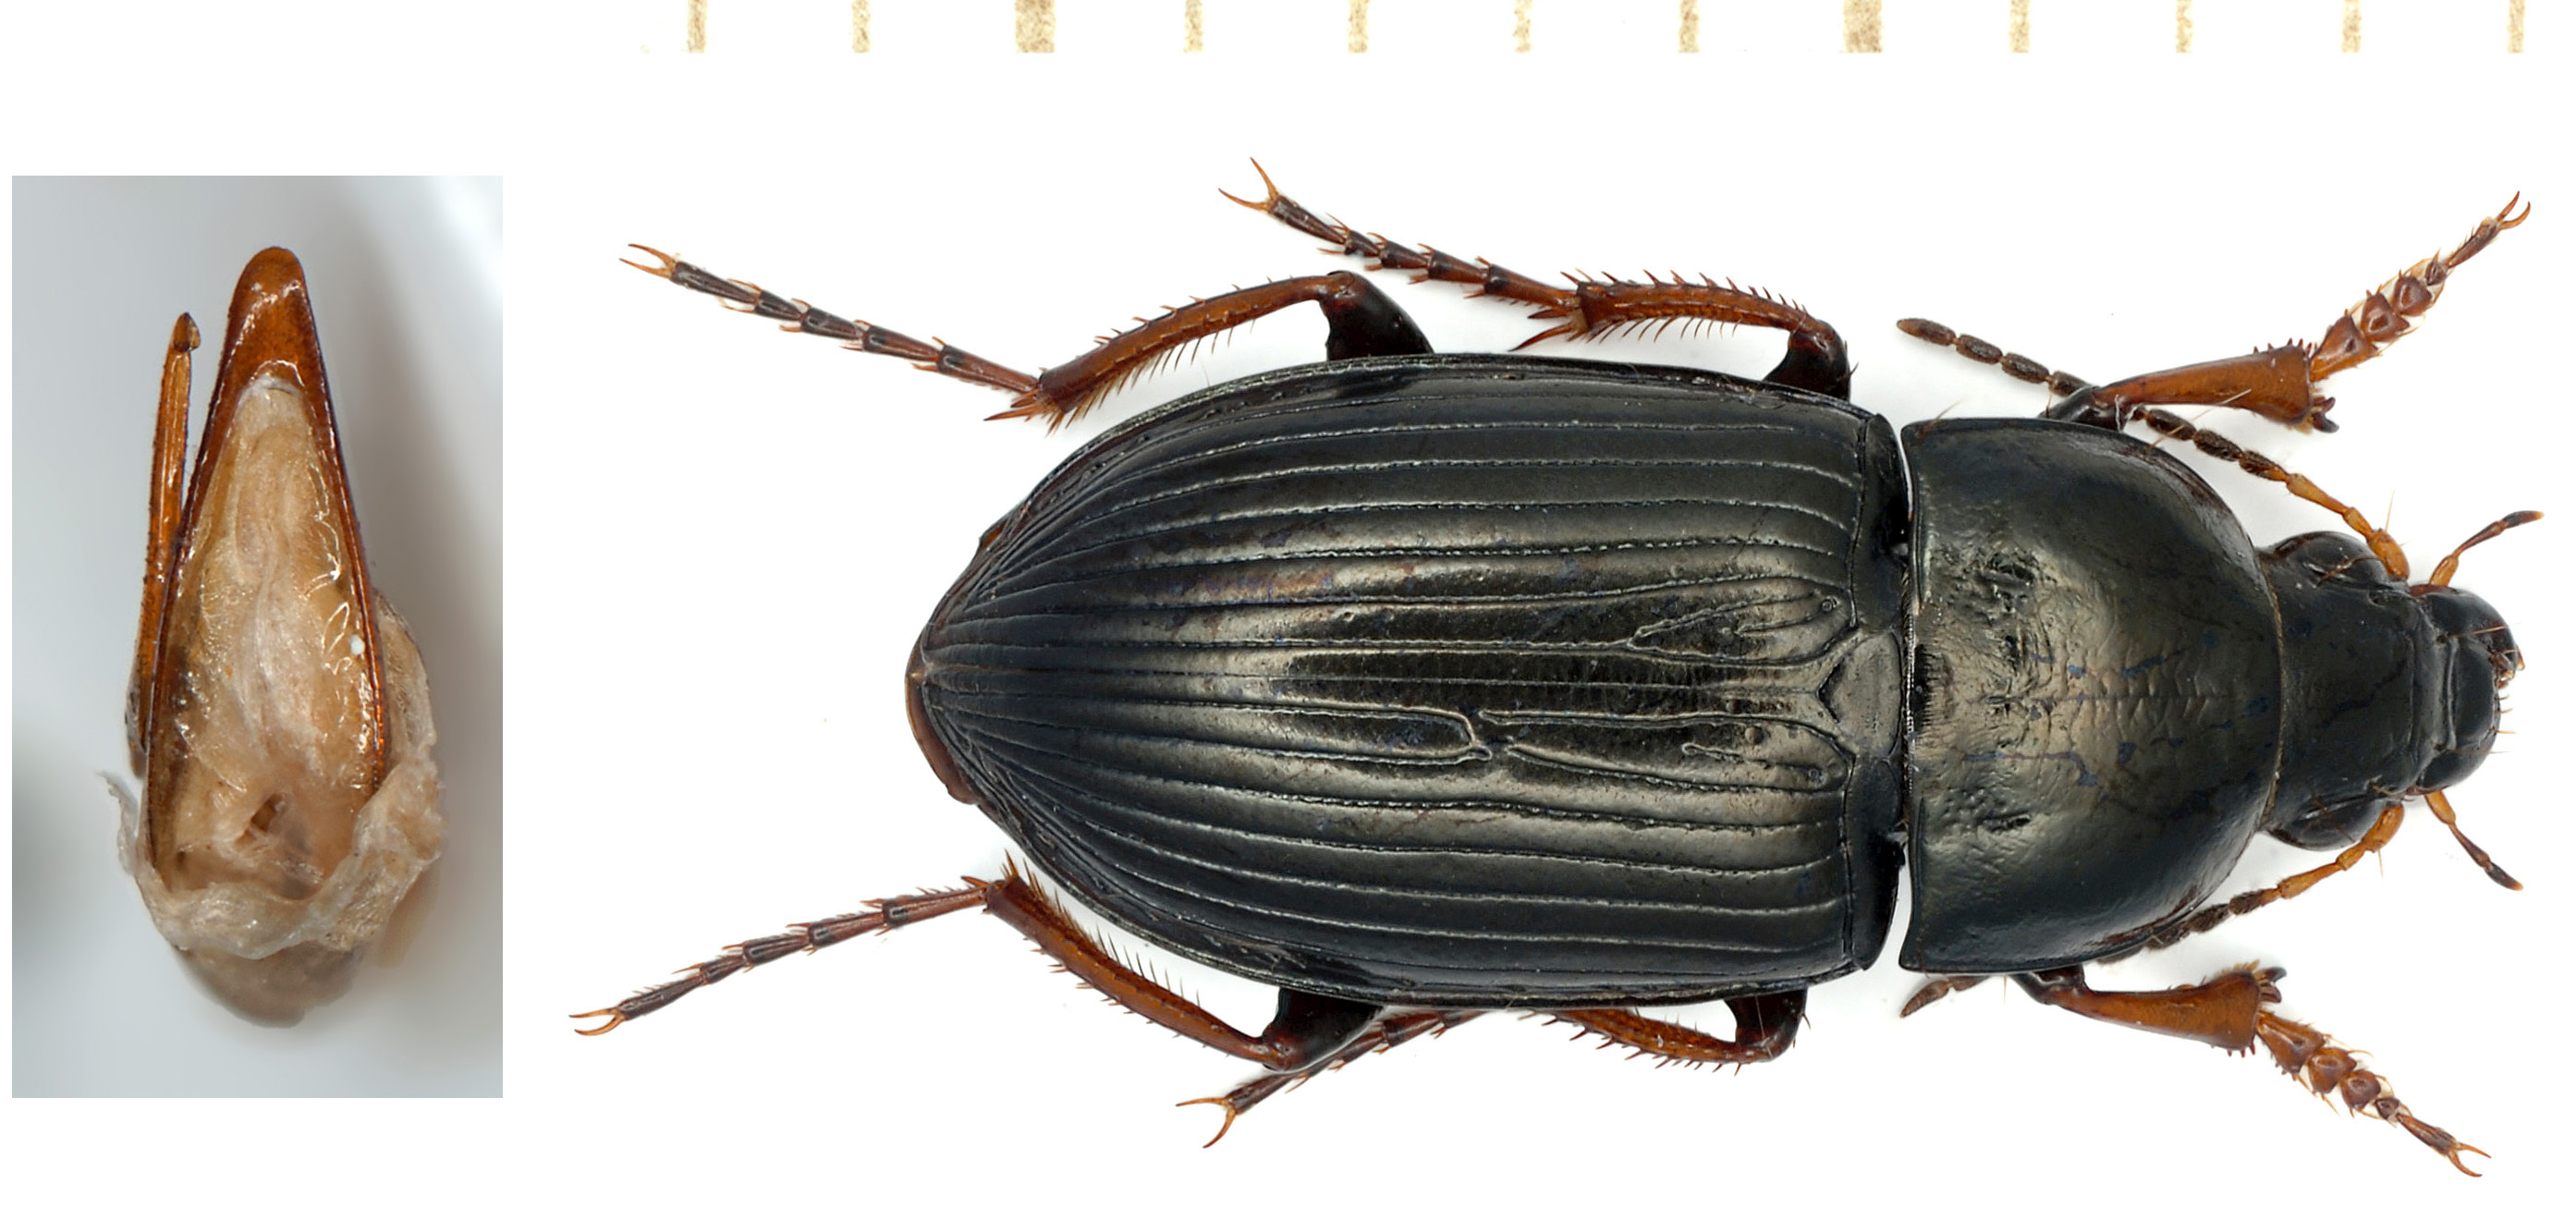 Amara fulvipes (Audinet-Serville, 1821)